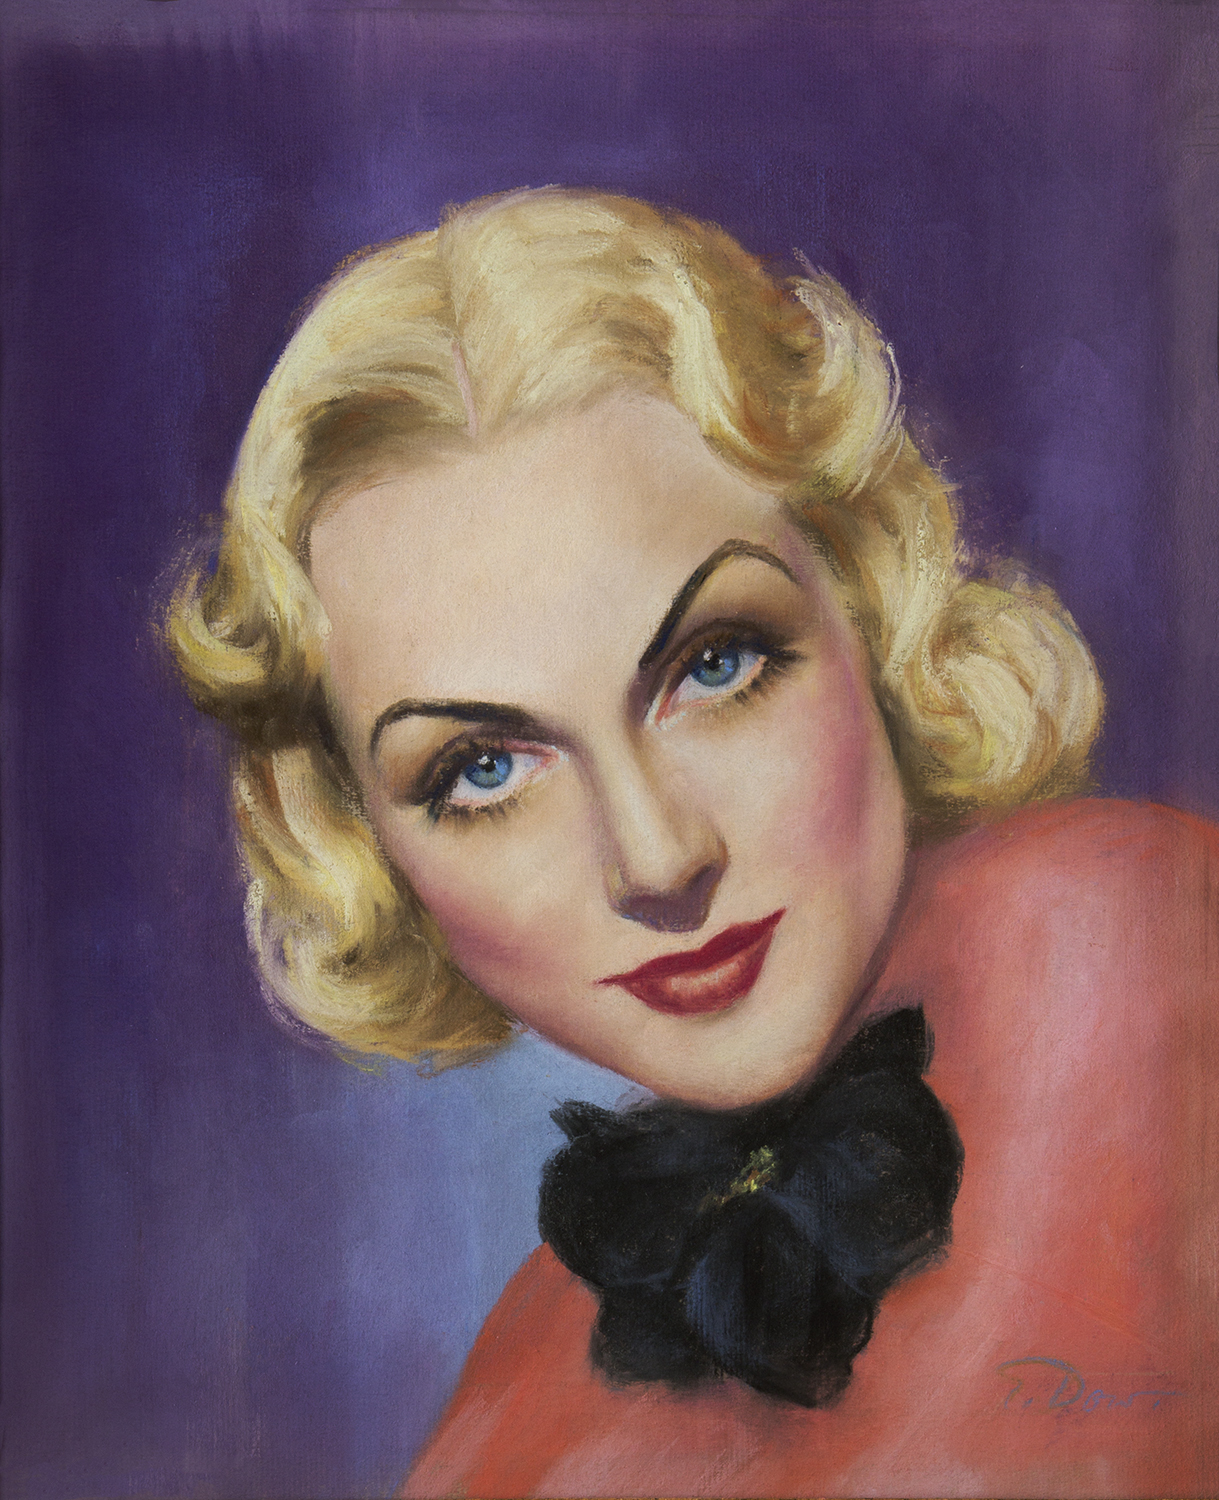 Carole Lombard illustration showing her in pink blouse with bow